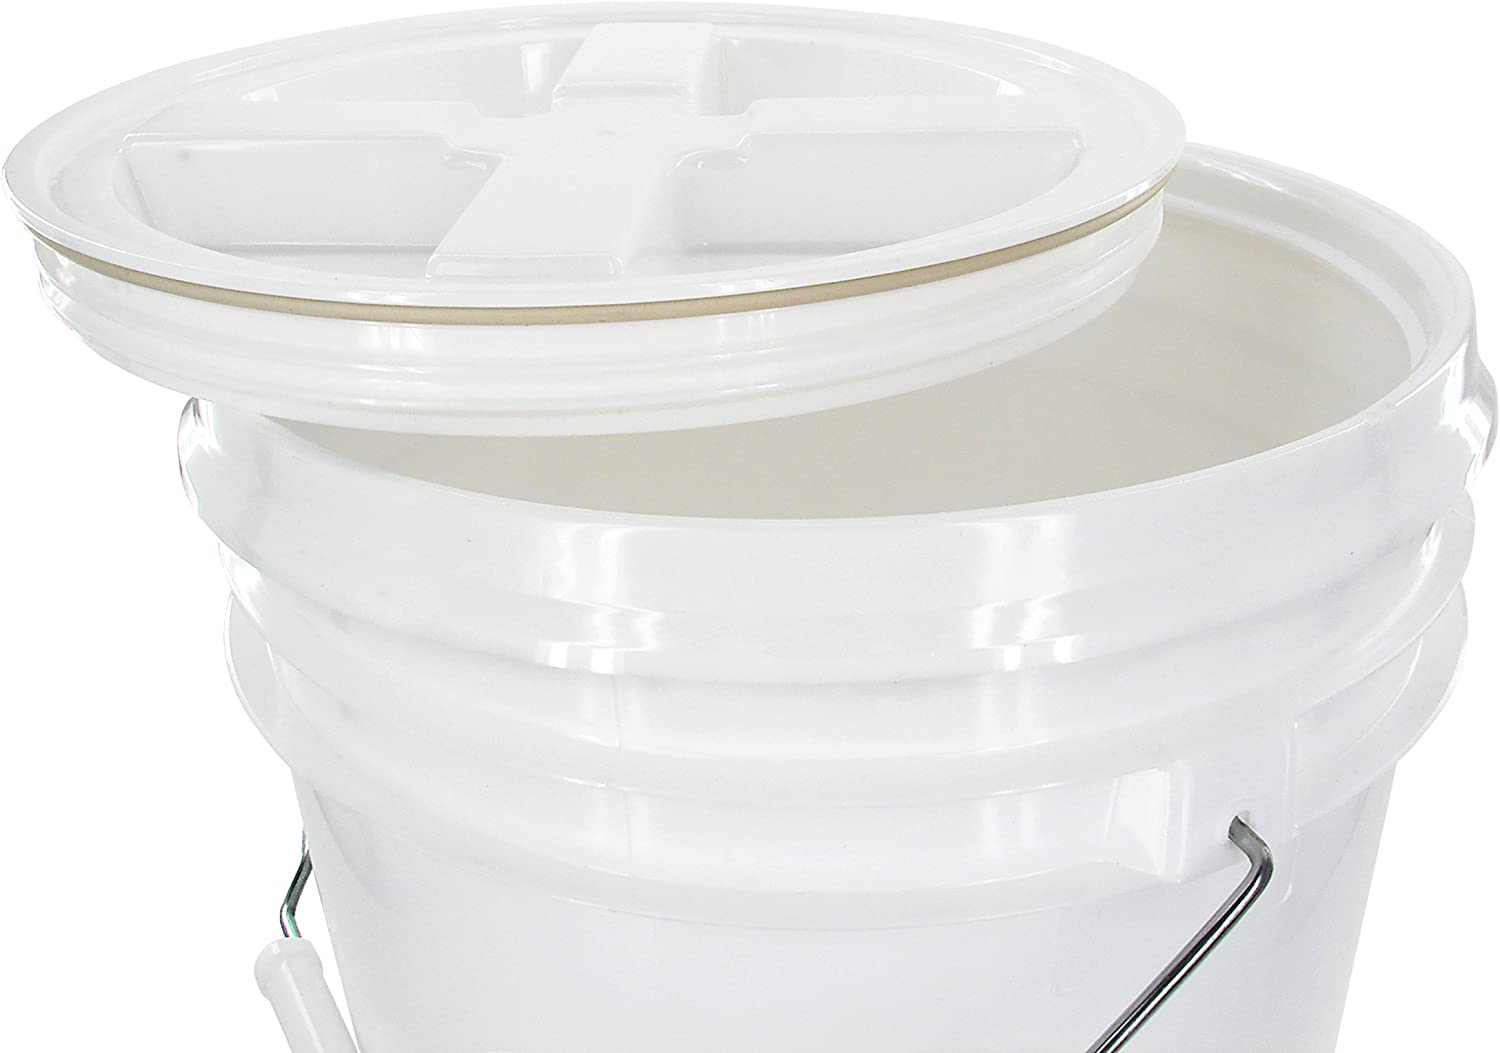 10 White Charity collection Buckets with lids and seal etc